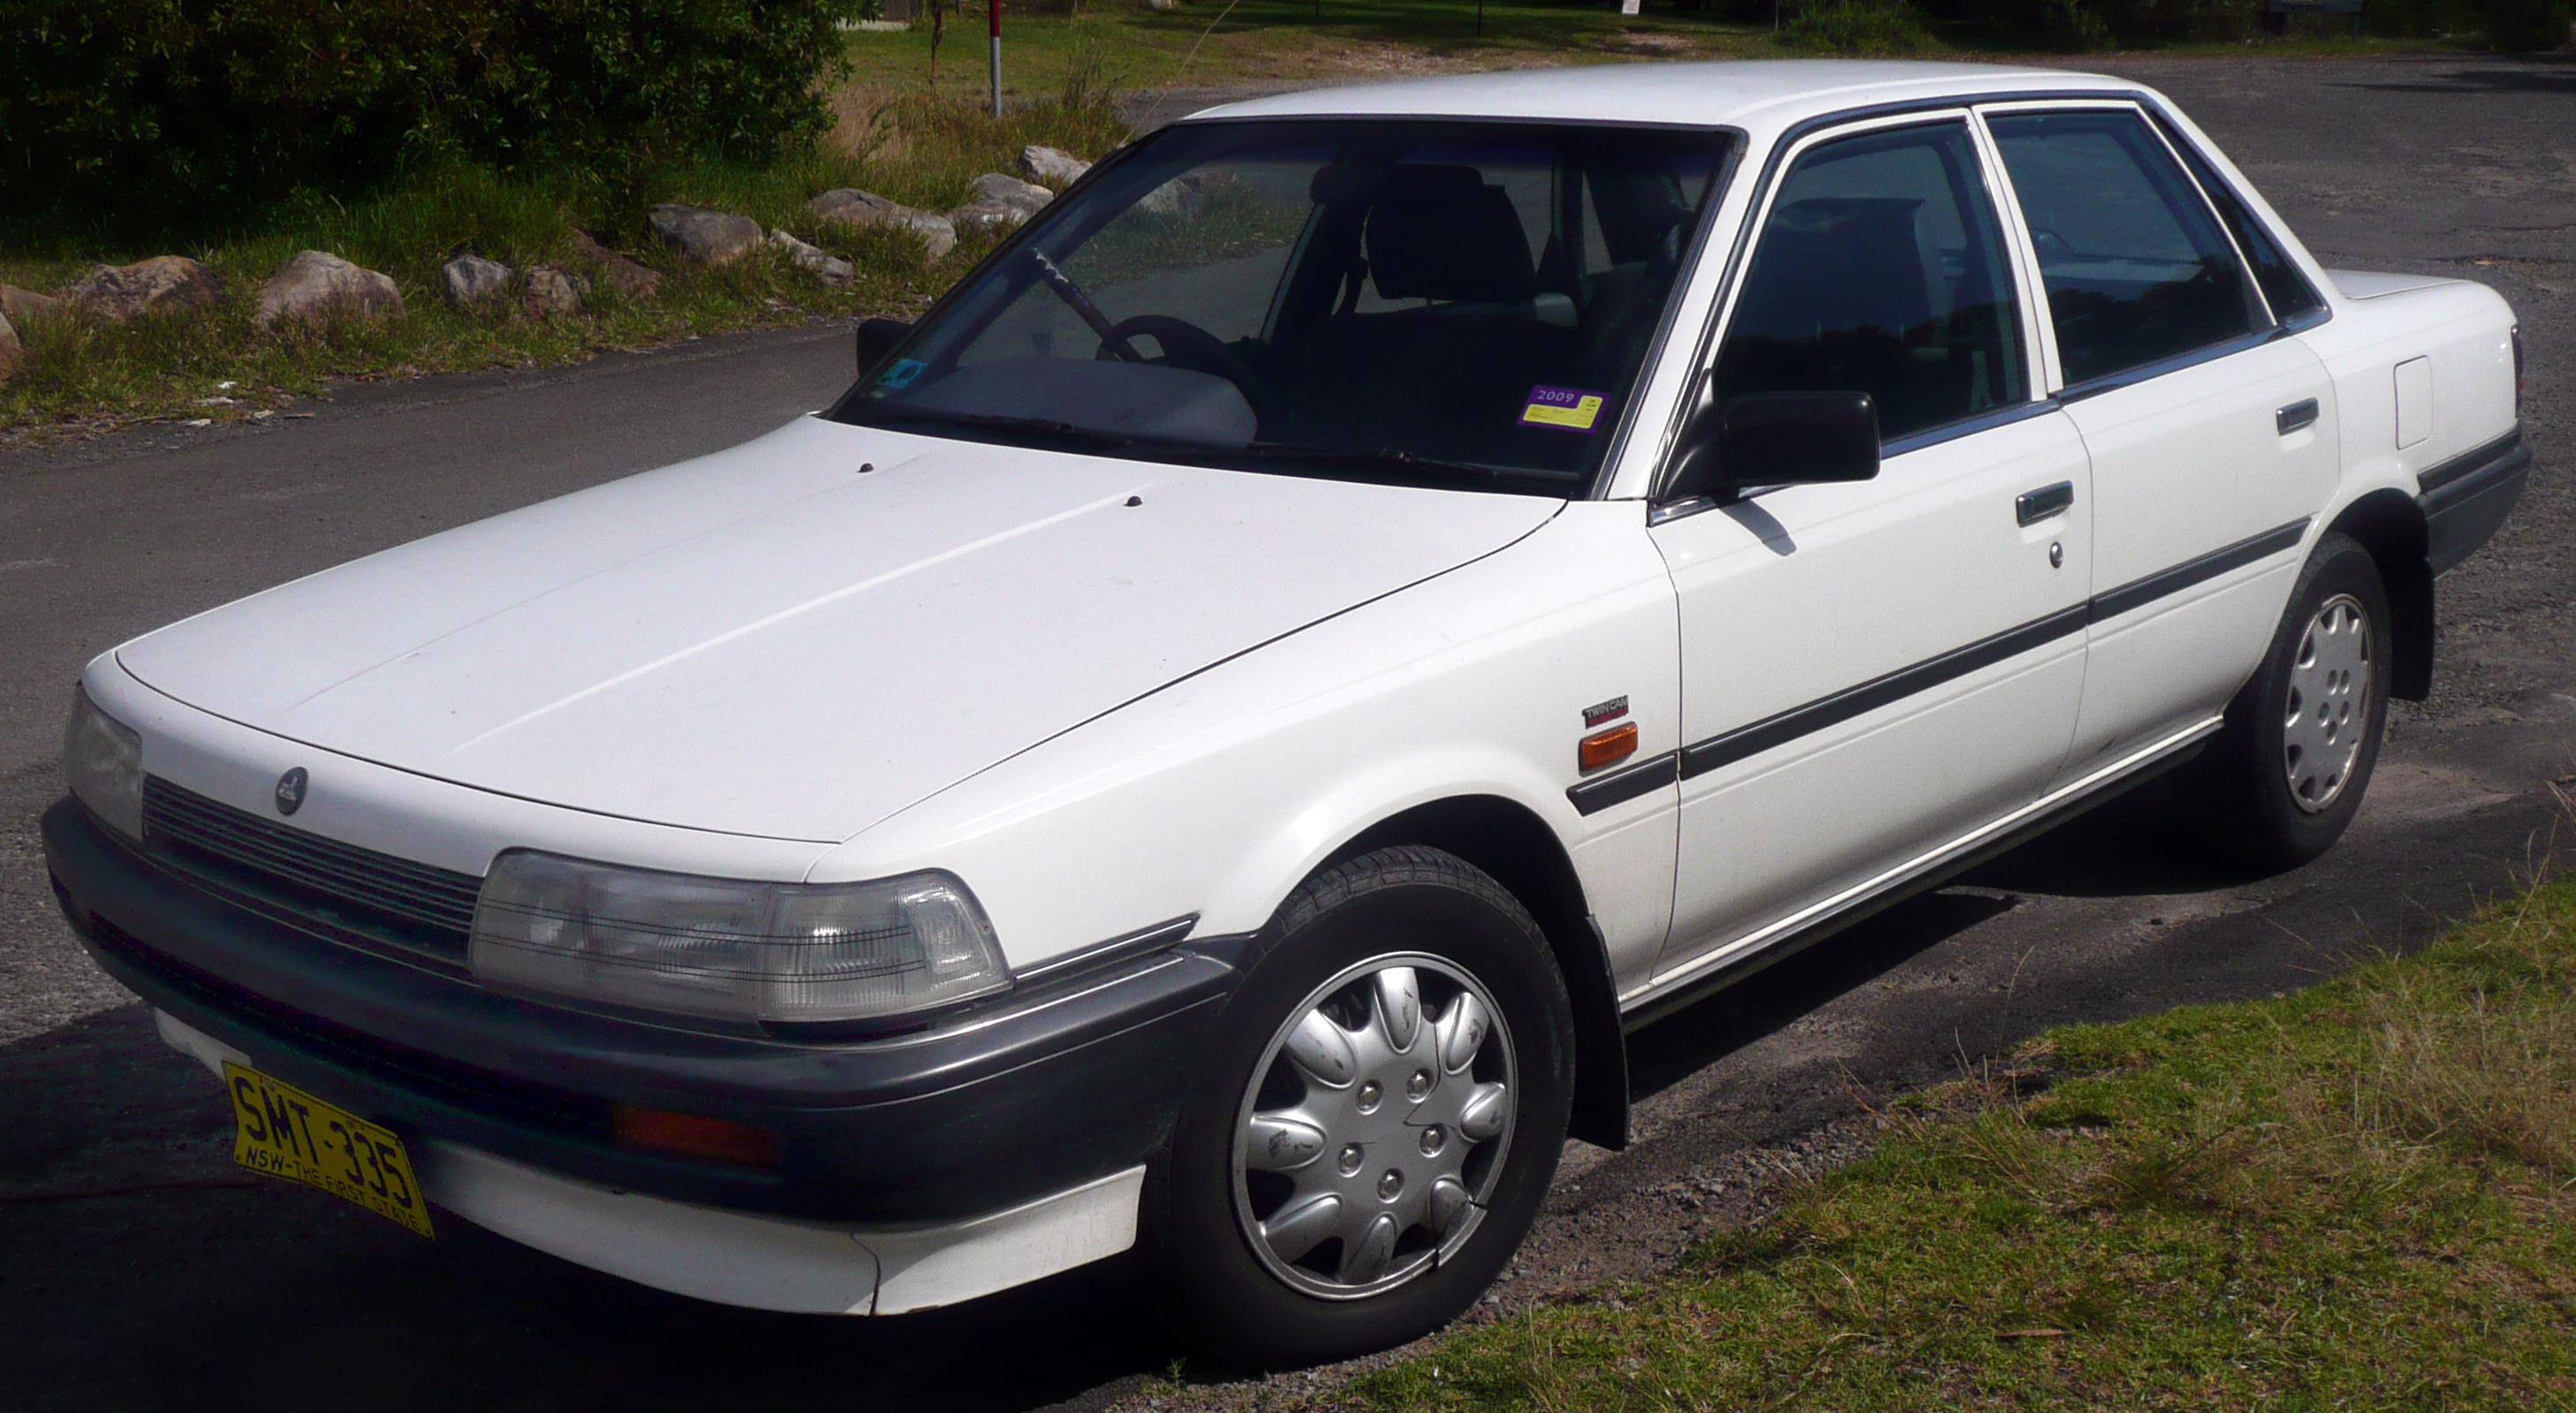 File 1991 1992 Holden Apollo Jl Slx Sedan 2008 12 28 02 Jpg